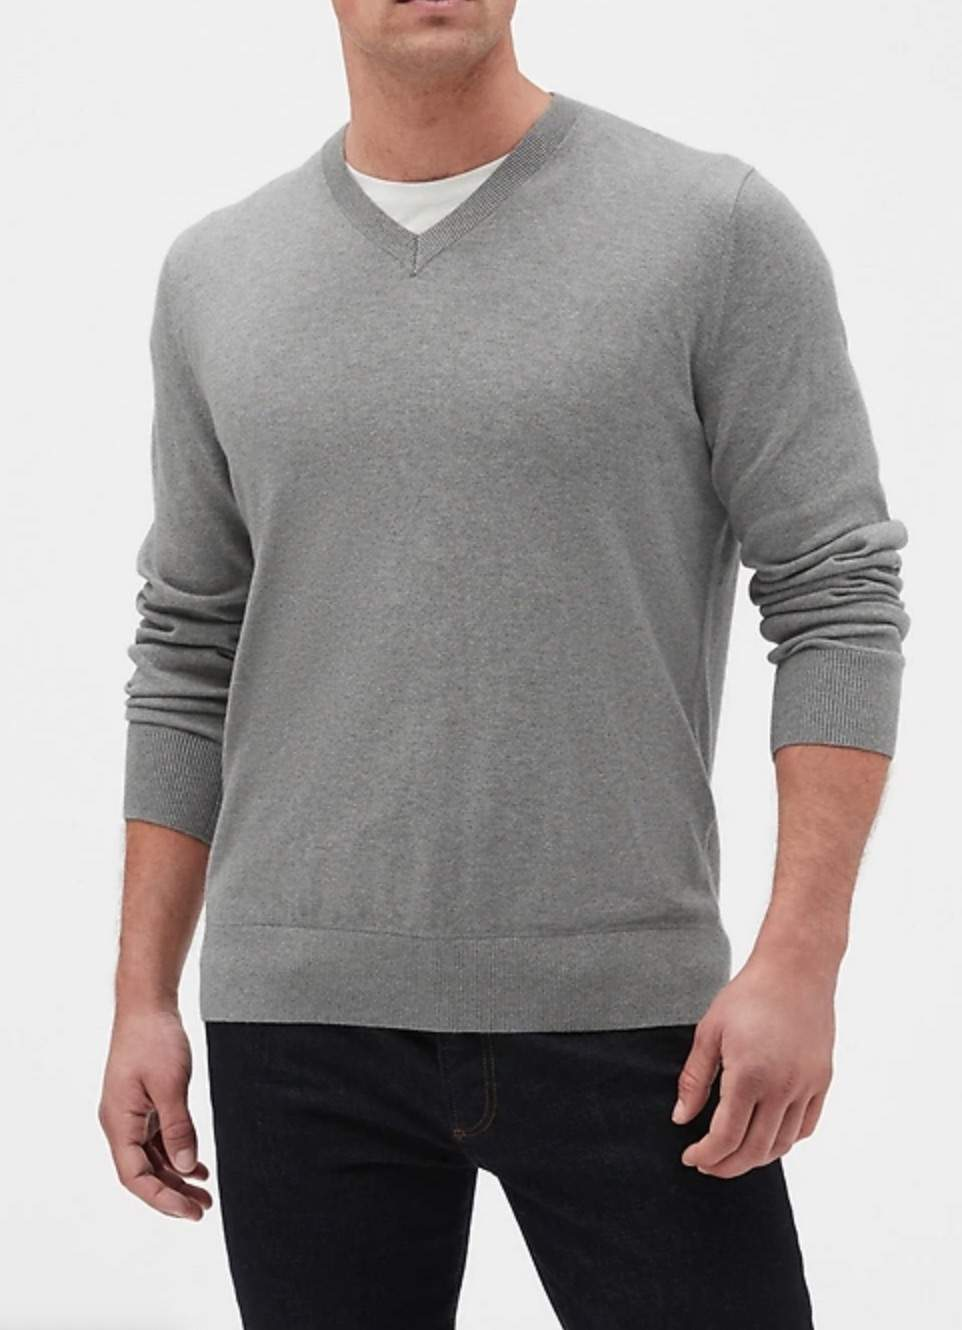 Gap Factory: Men's Colorblock Full-Zip Bomber Sweater $13, V-Neck Sweater